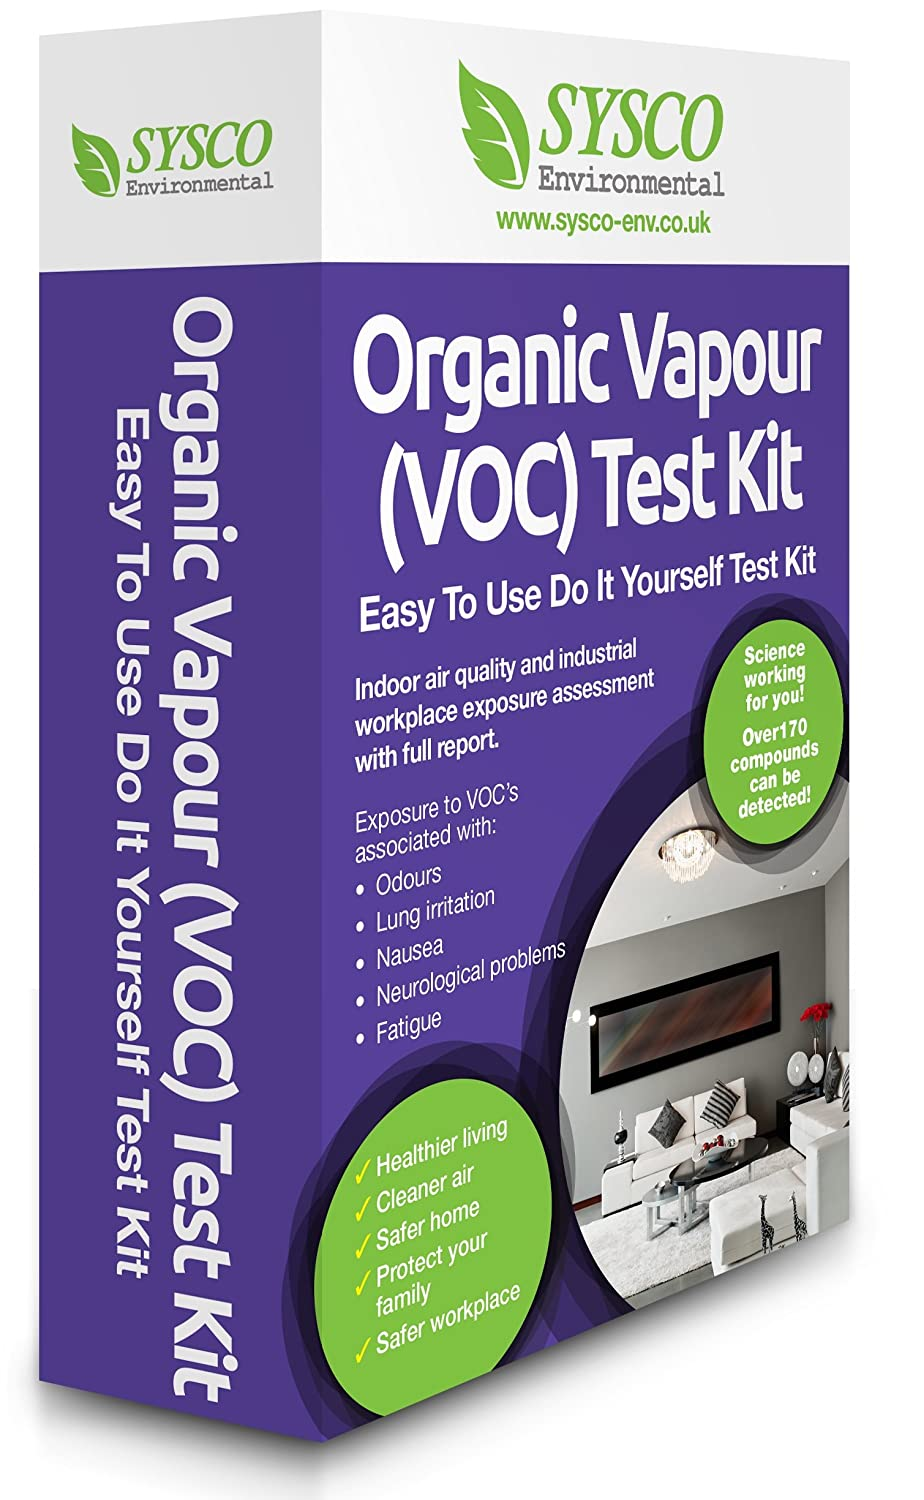 Organic vapour voc test kit for healthy living 1 amazon organic vapour voc test kit for healthy living 1 amazon business industry science solutioingenieria Images